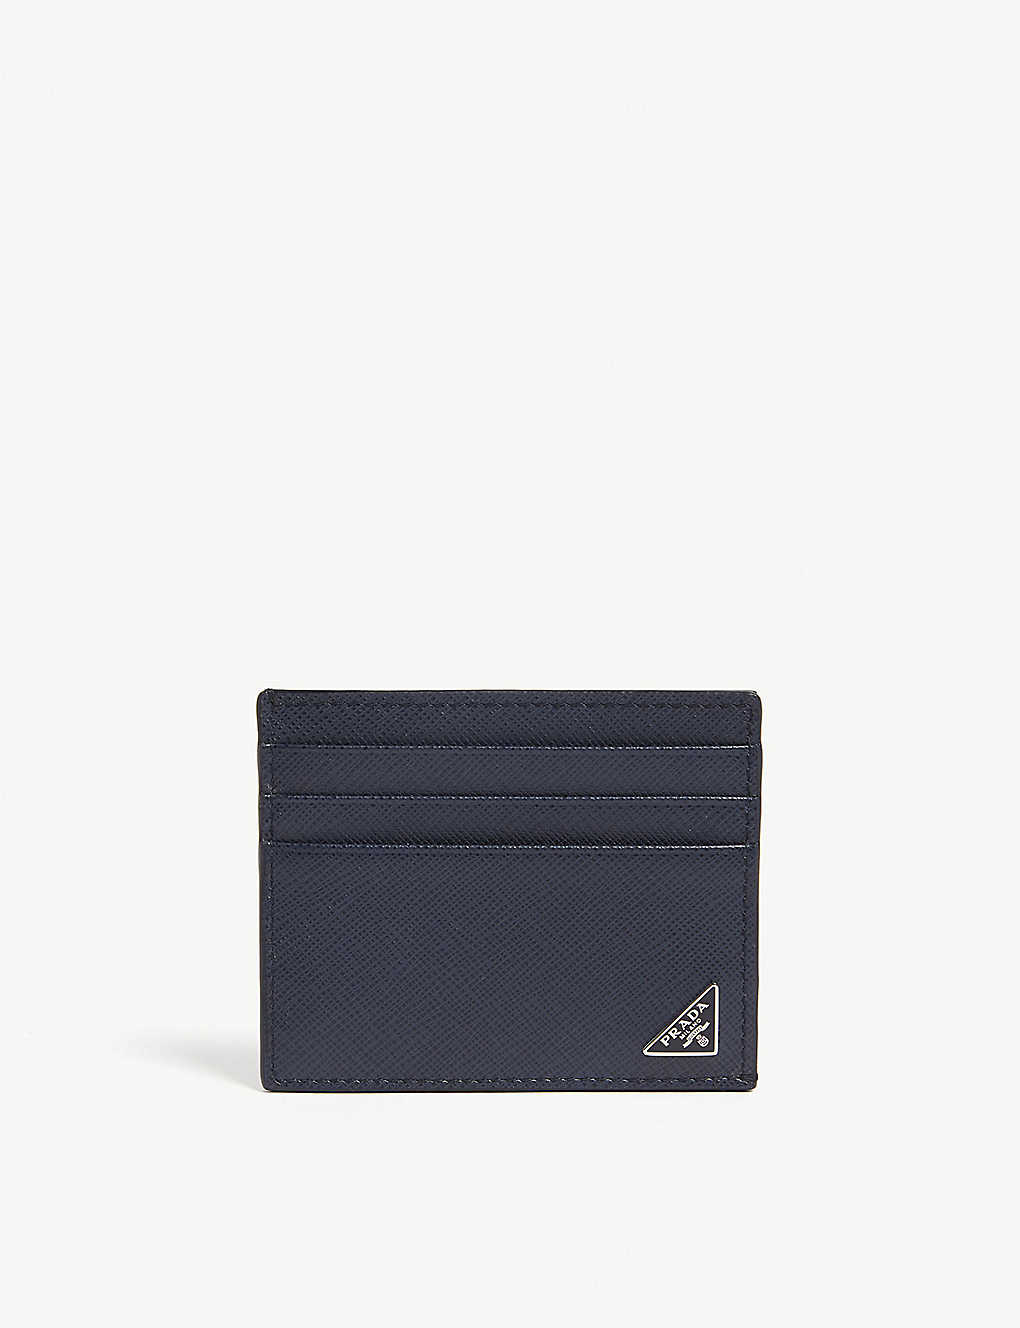 7bf1e629f414 PRADA - Saffiano leather card holder | Selfridges.com